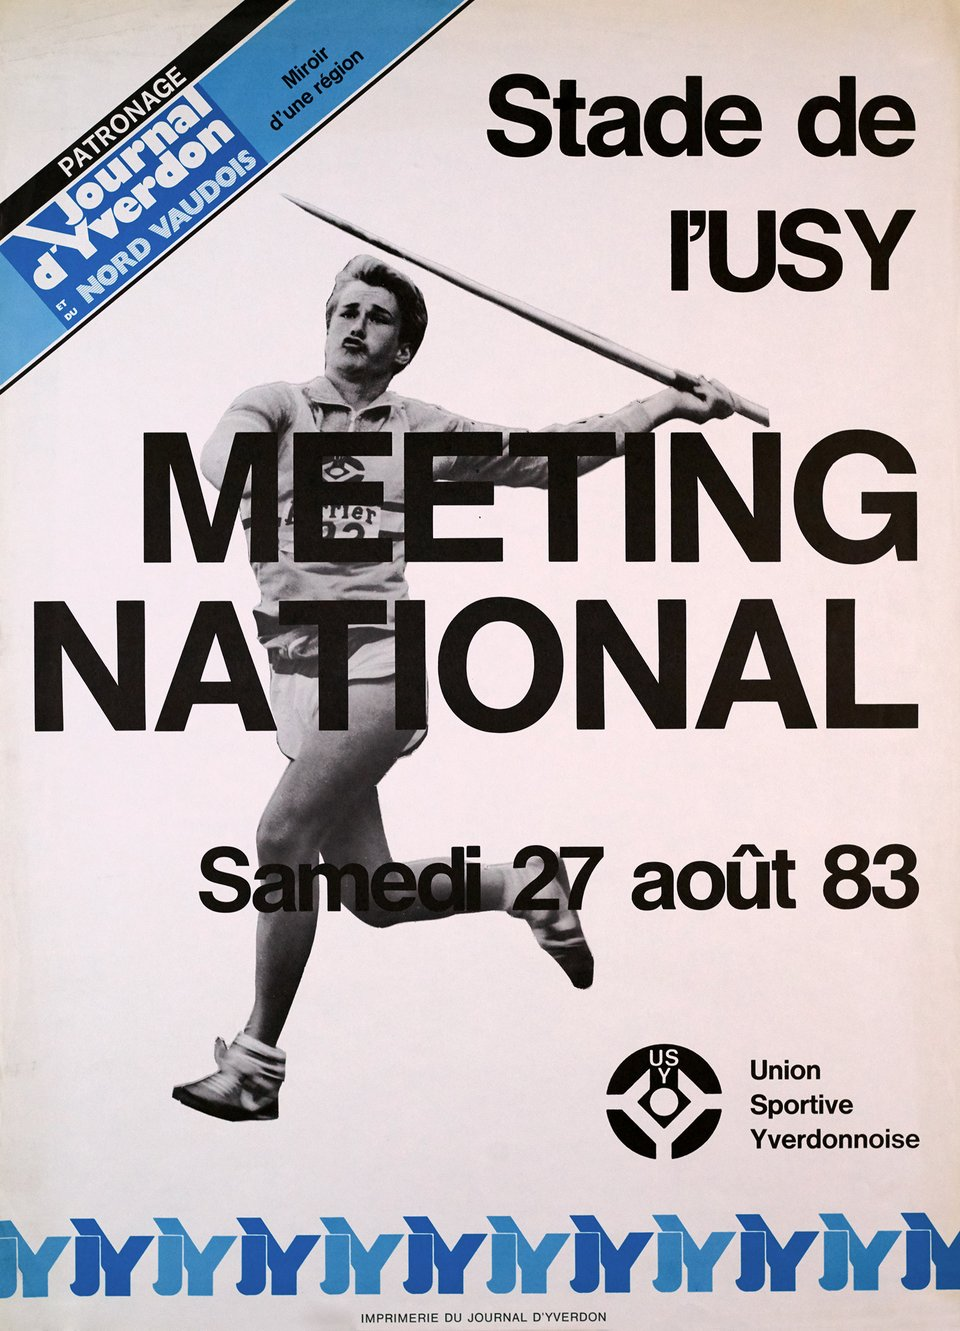 Meeting National, Stade de l'USY – Affiche ancienne –  ANONYME – 1983